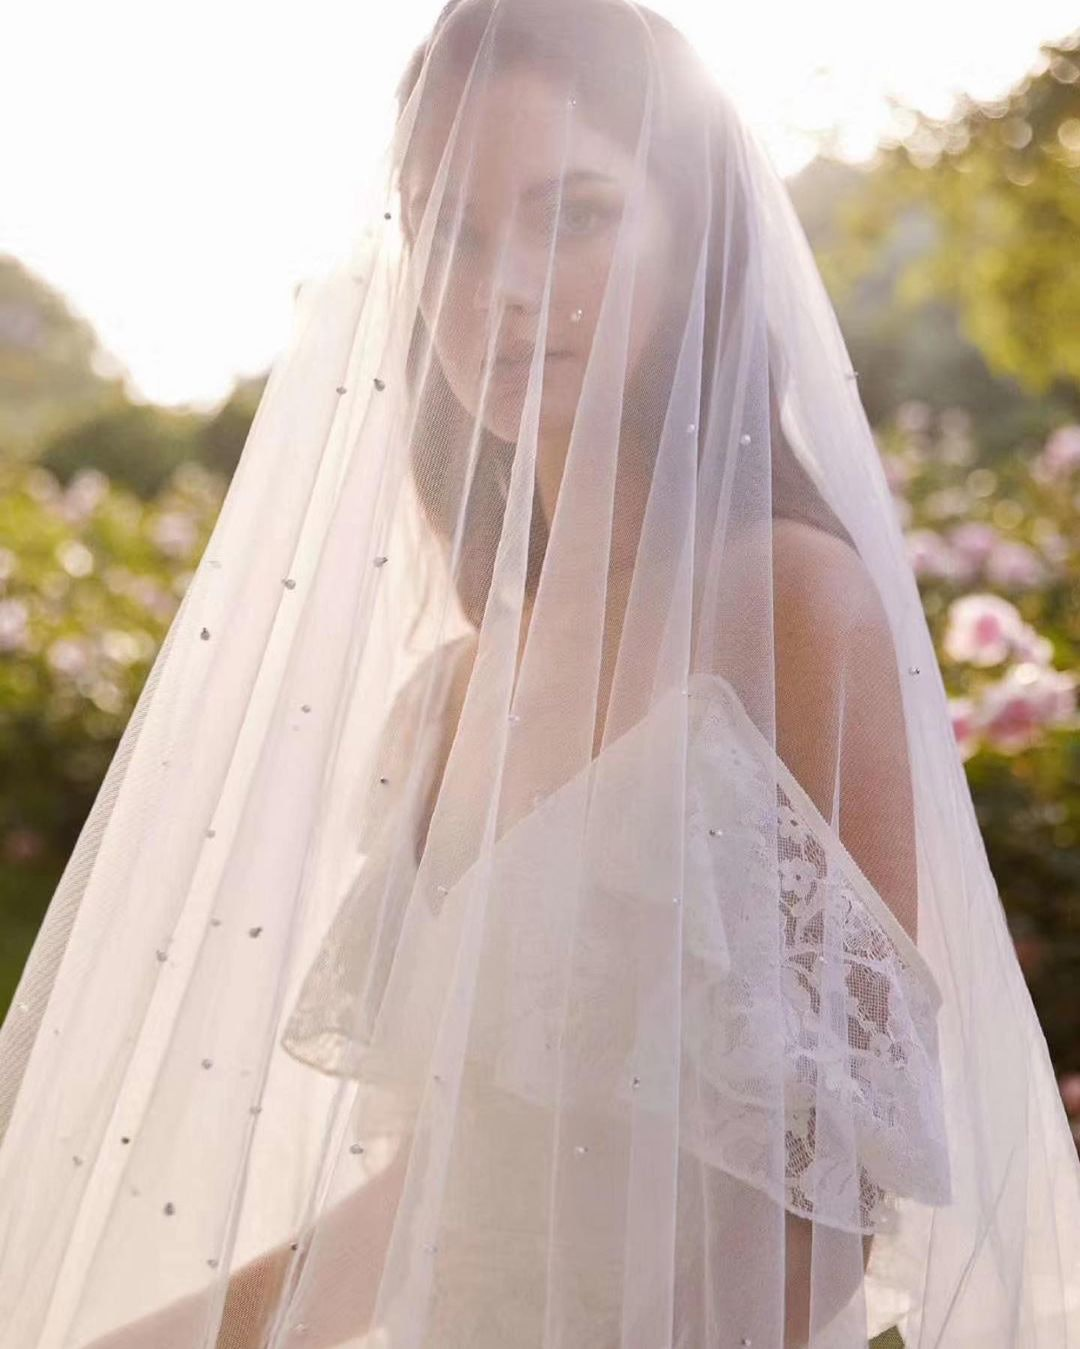 Bride wearing a long veil that covers her face and shoulders